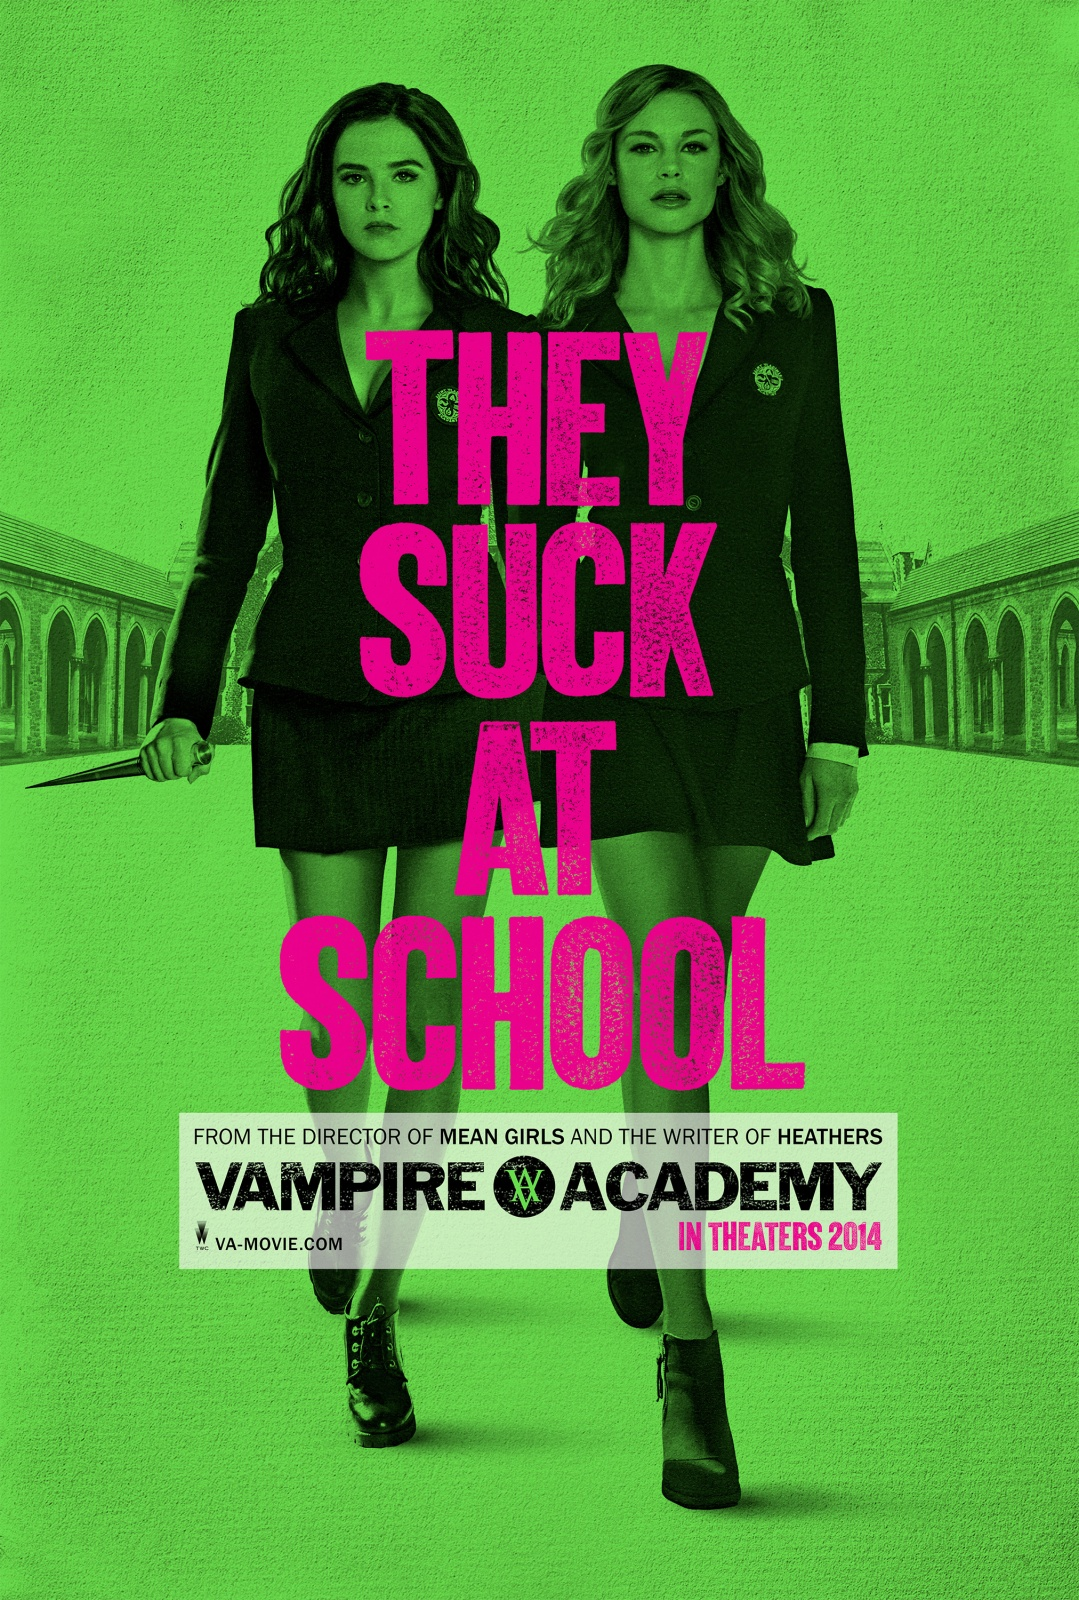 vampire academy blood sisters 2014 movie trailer